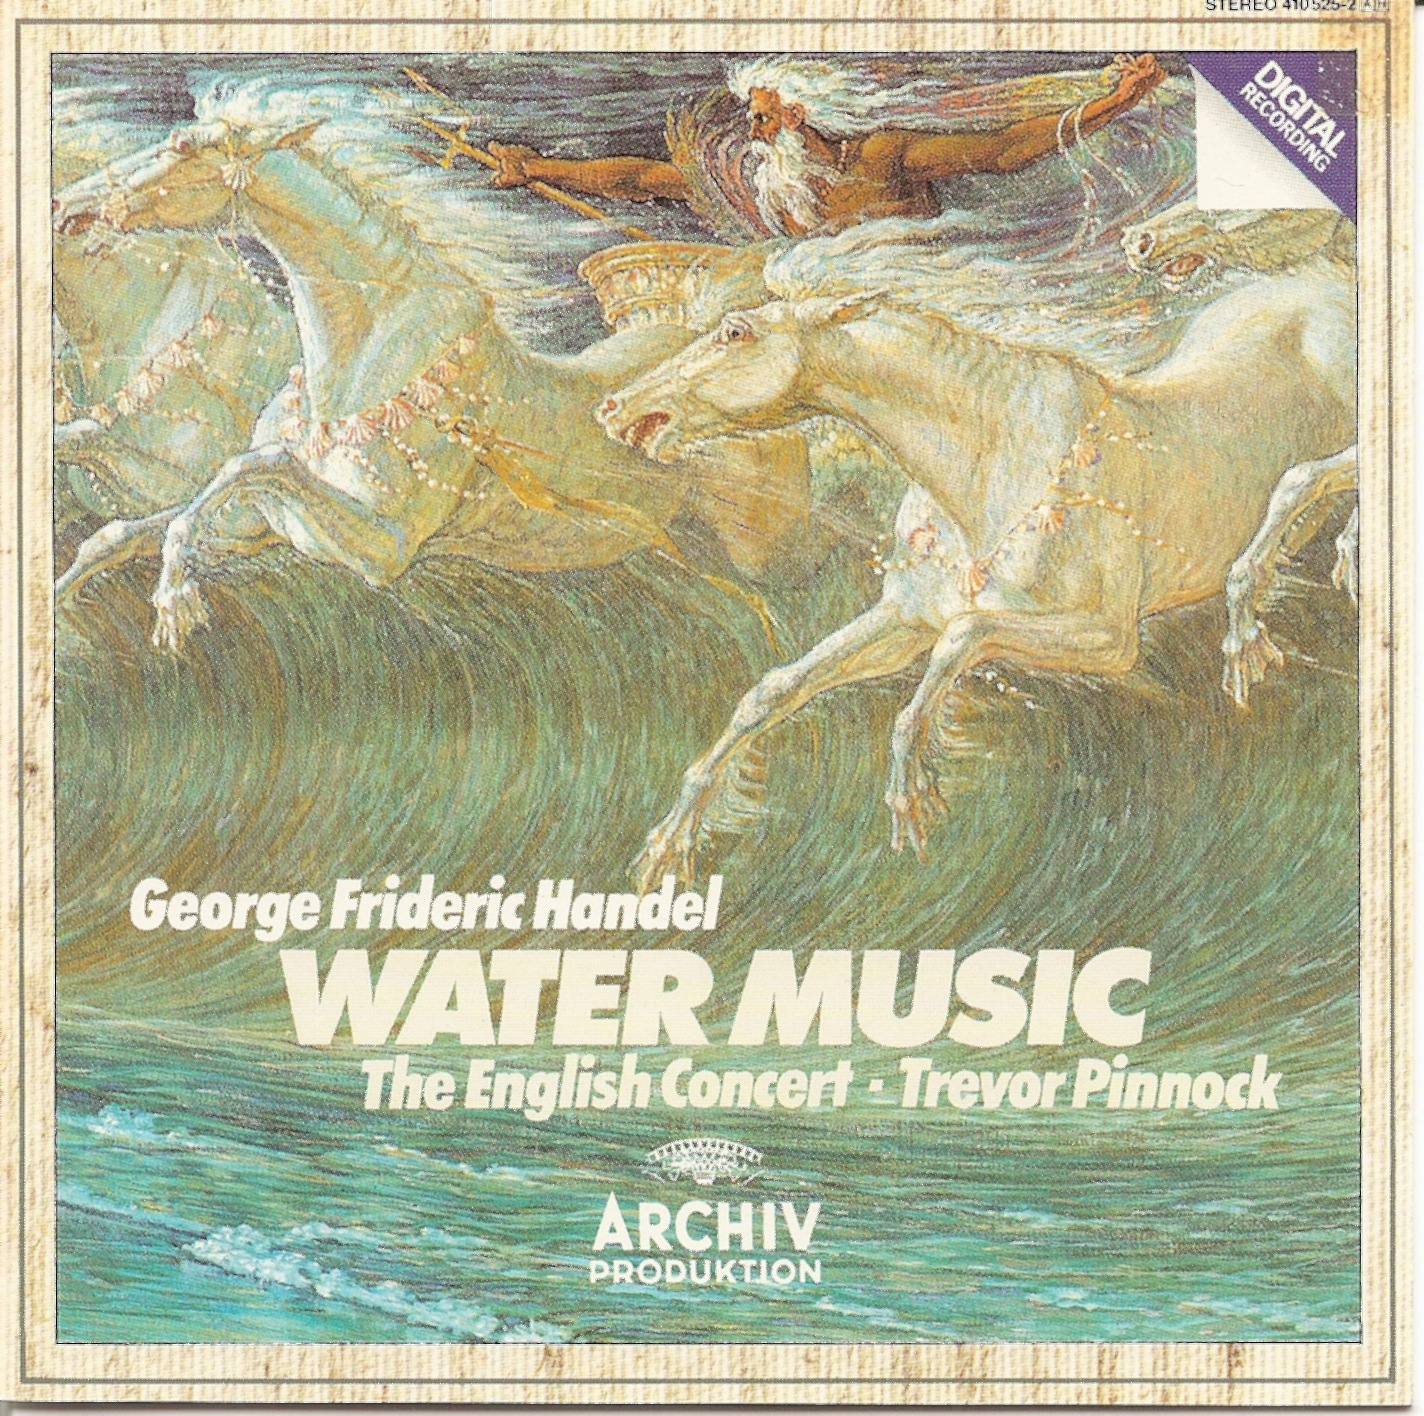 The First Pressing CD Collection: George Frideric Handel ...